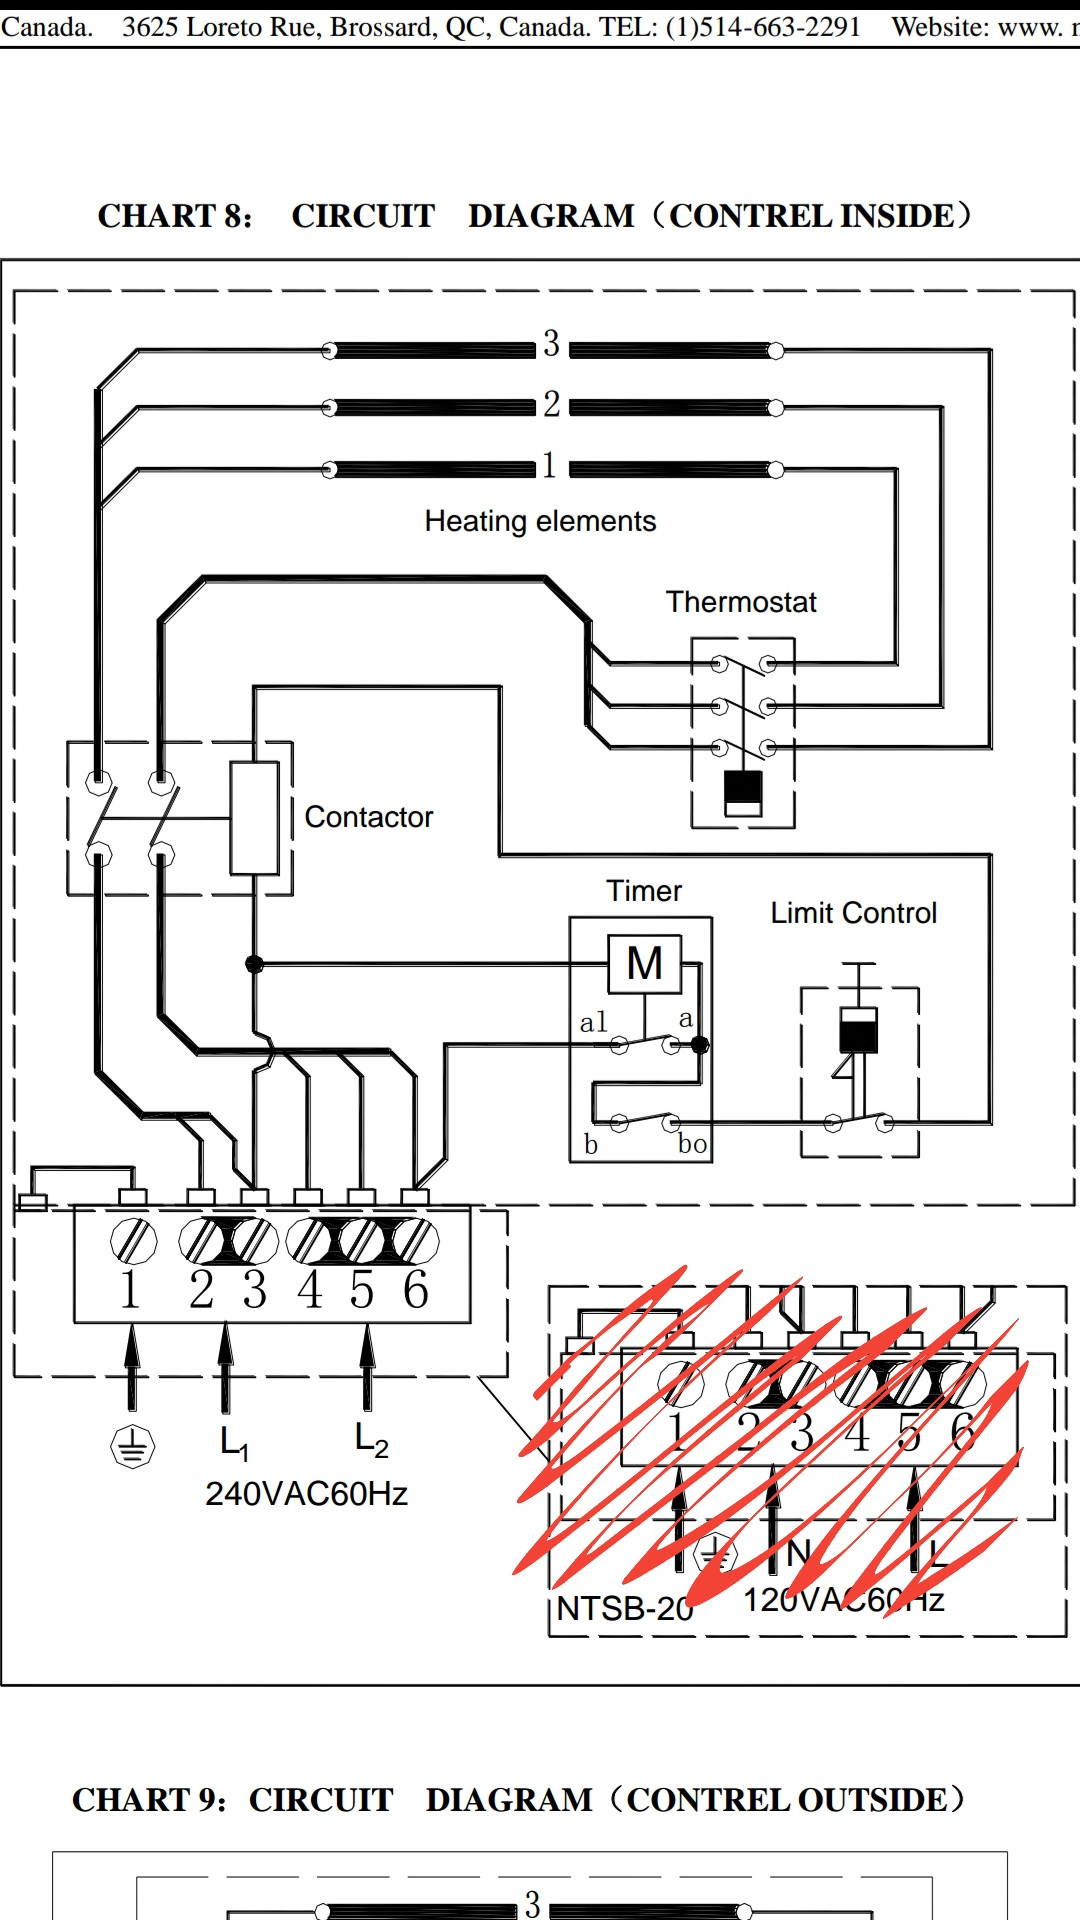 sauna heater wiring diagram Collection-Sauna Heater Wiring Diagram 2-l